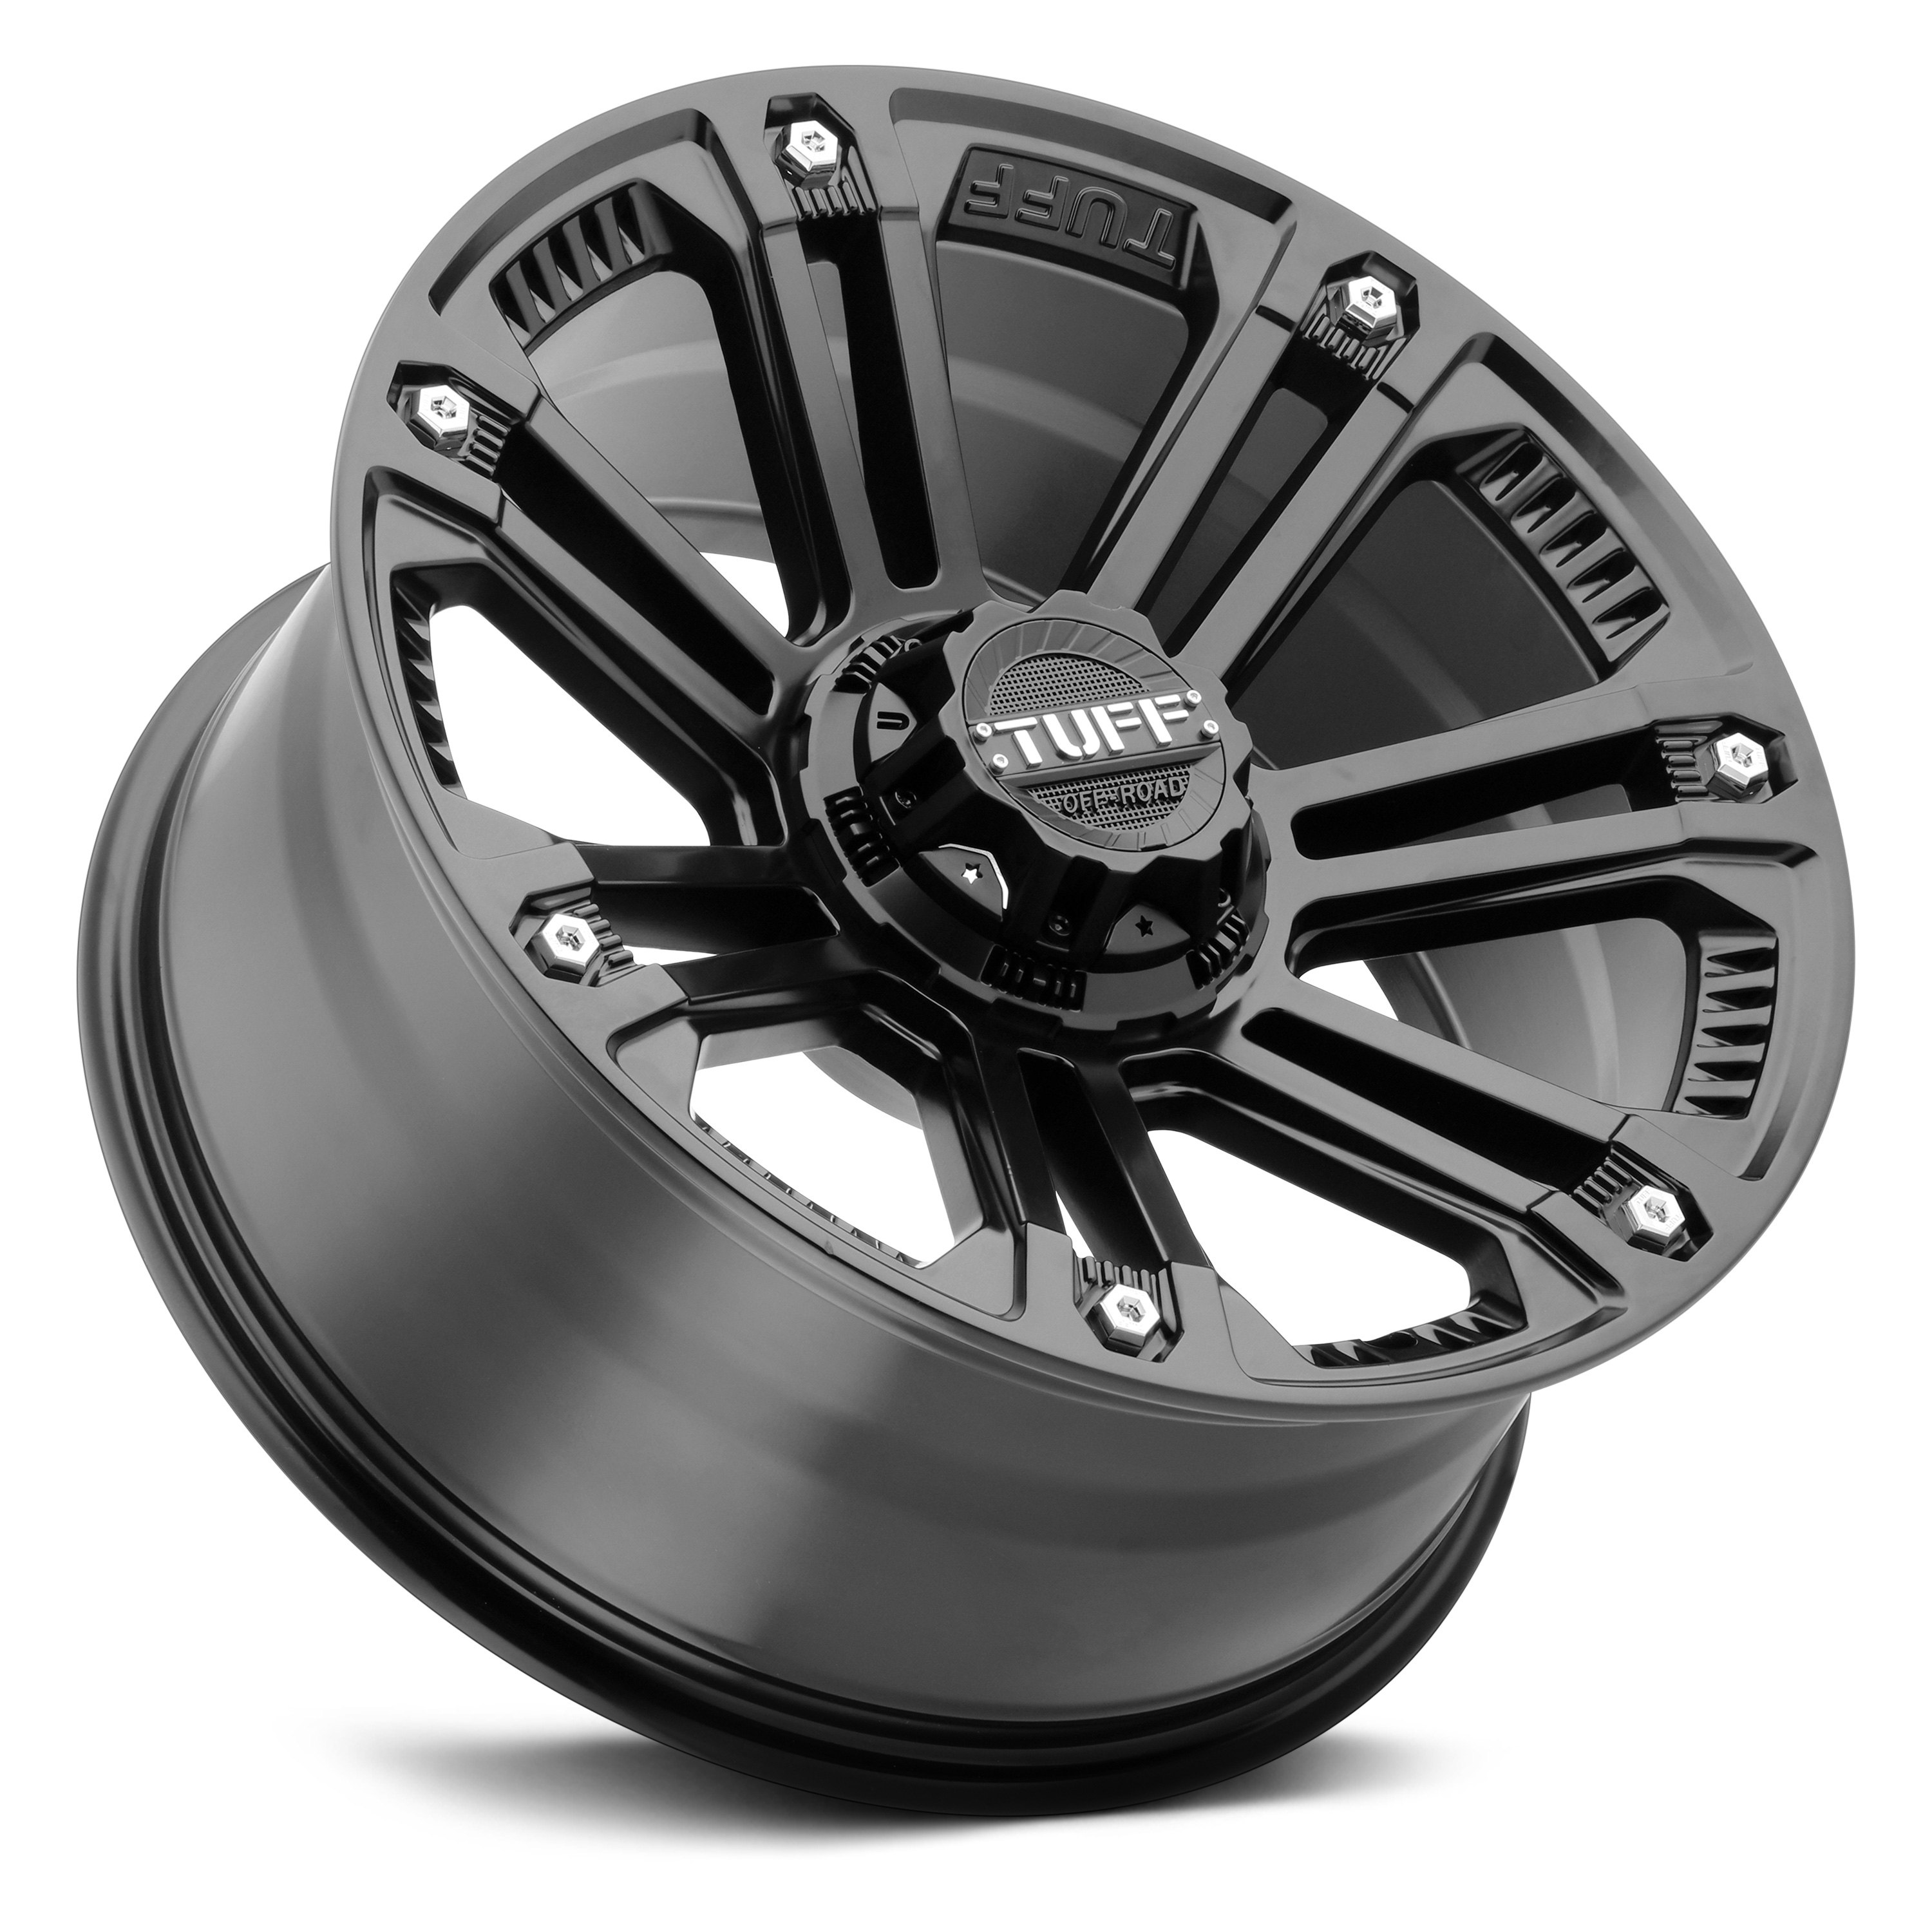 Tuff 174 T22 Wheels Matte Black With Stainless Steel Bolts Rims